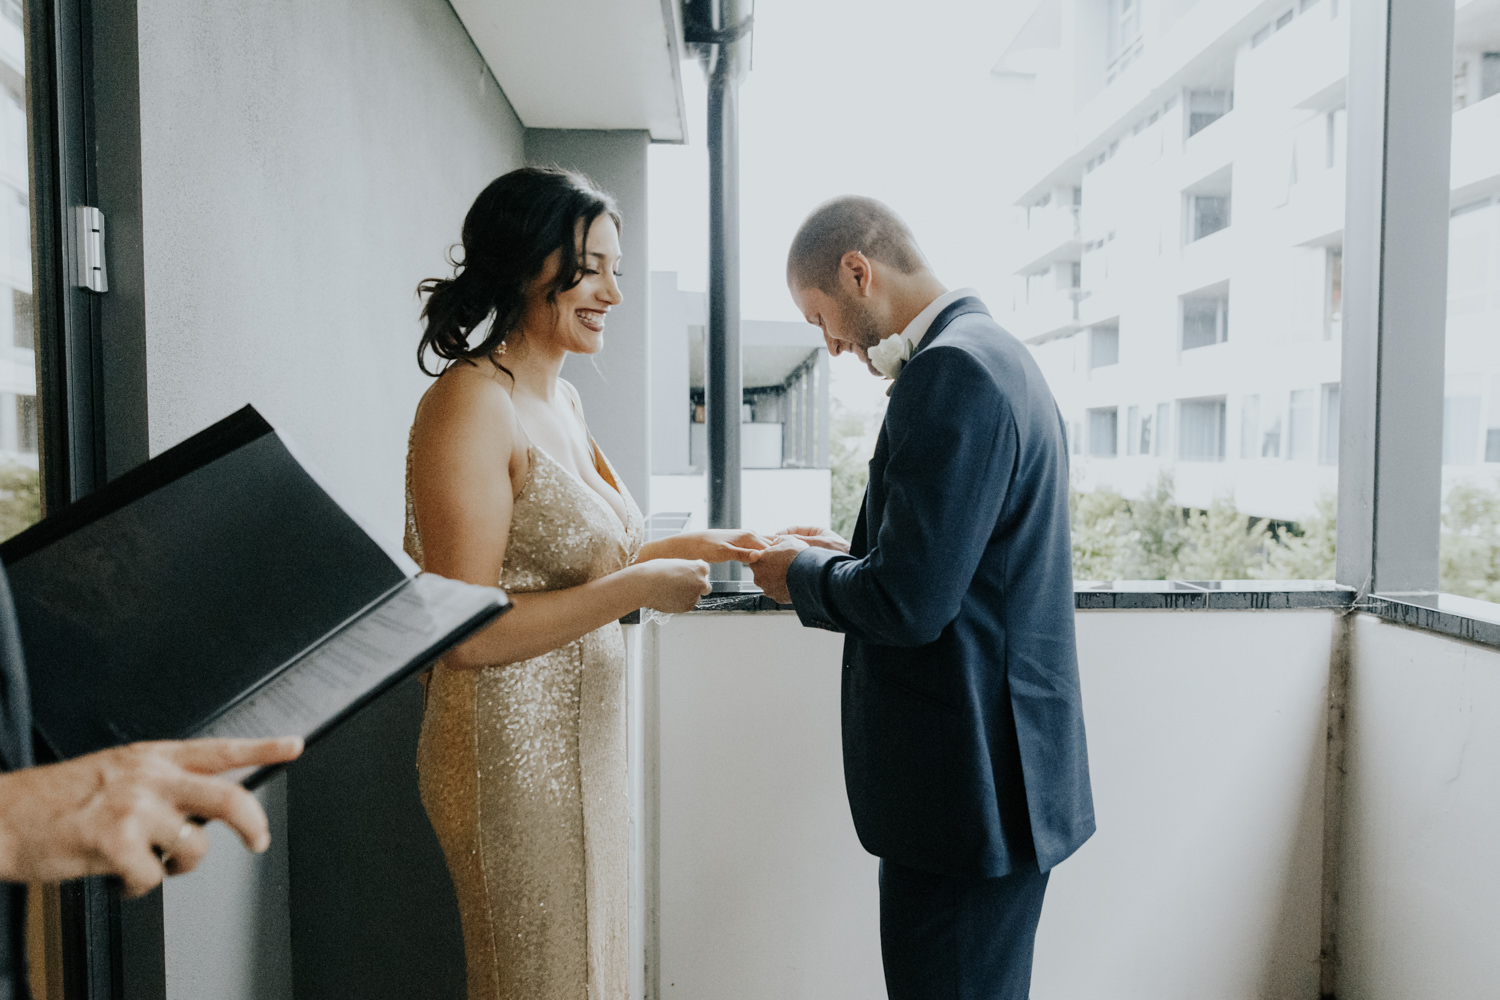 Intimate hotel balcony wedding Canberra - wet weather ceremony- photography by Jenny Wu